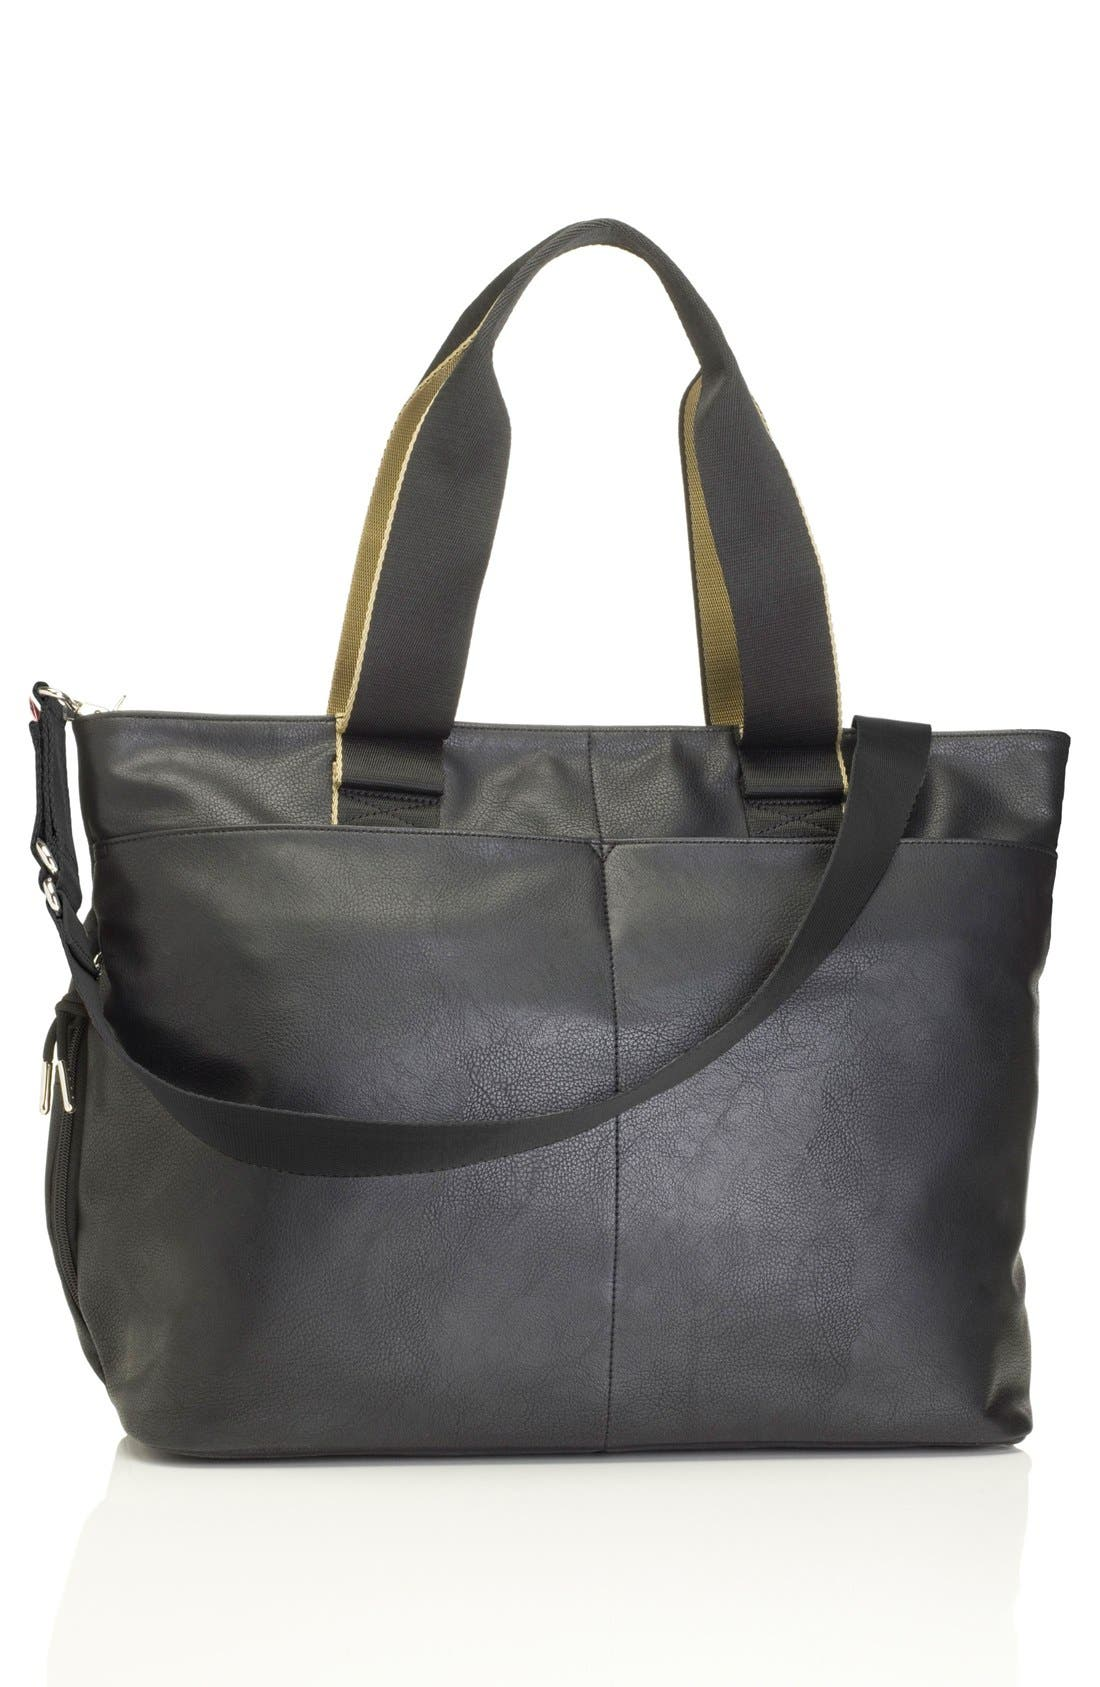 'Eden' Faux Leather Diaper Bag,                             Alternate thumbnail 3, color,                             BLACK